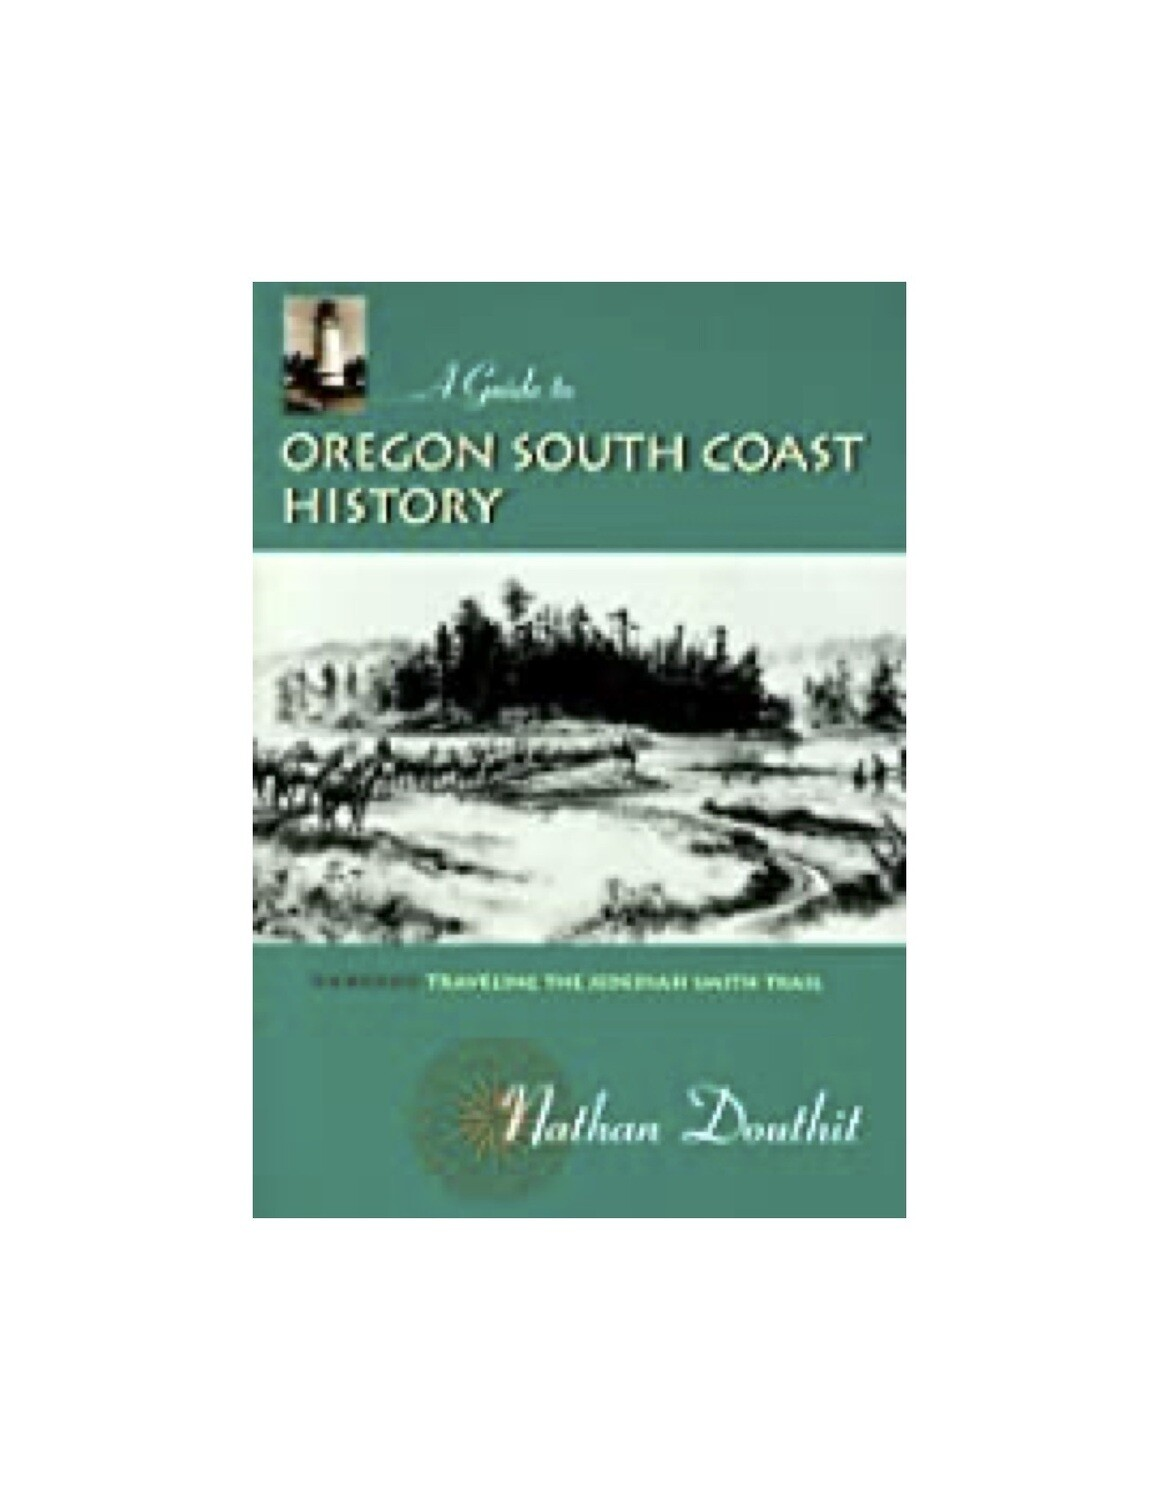 A Guide to Oregon South Coast History: Traveling the Jedediah Smith Trail